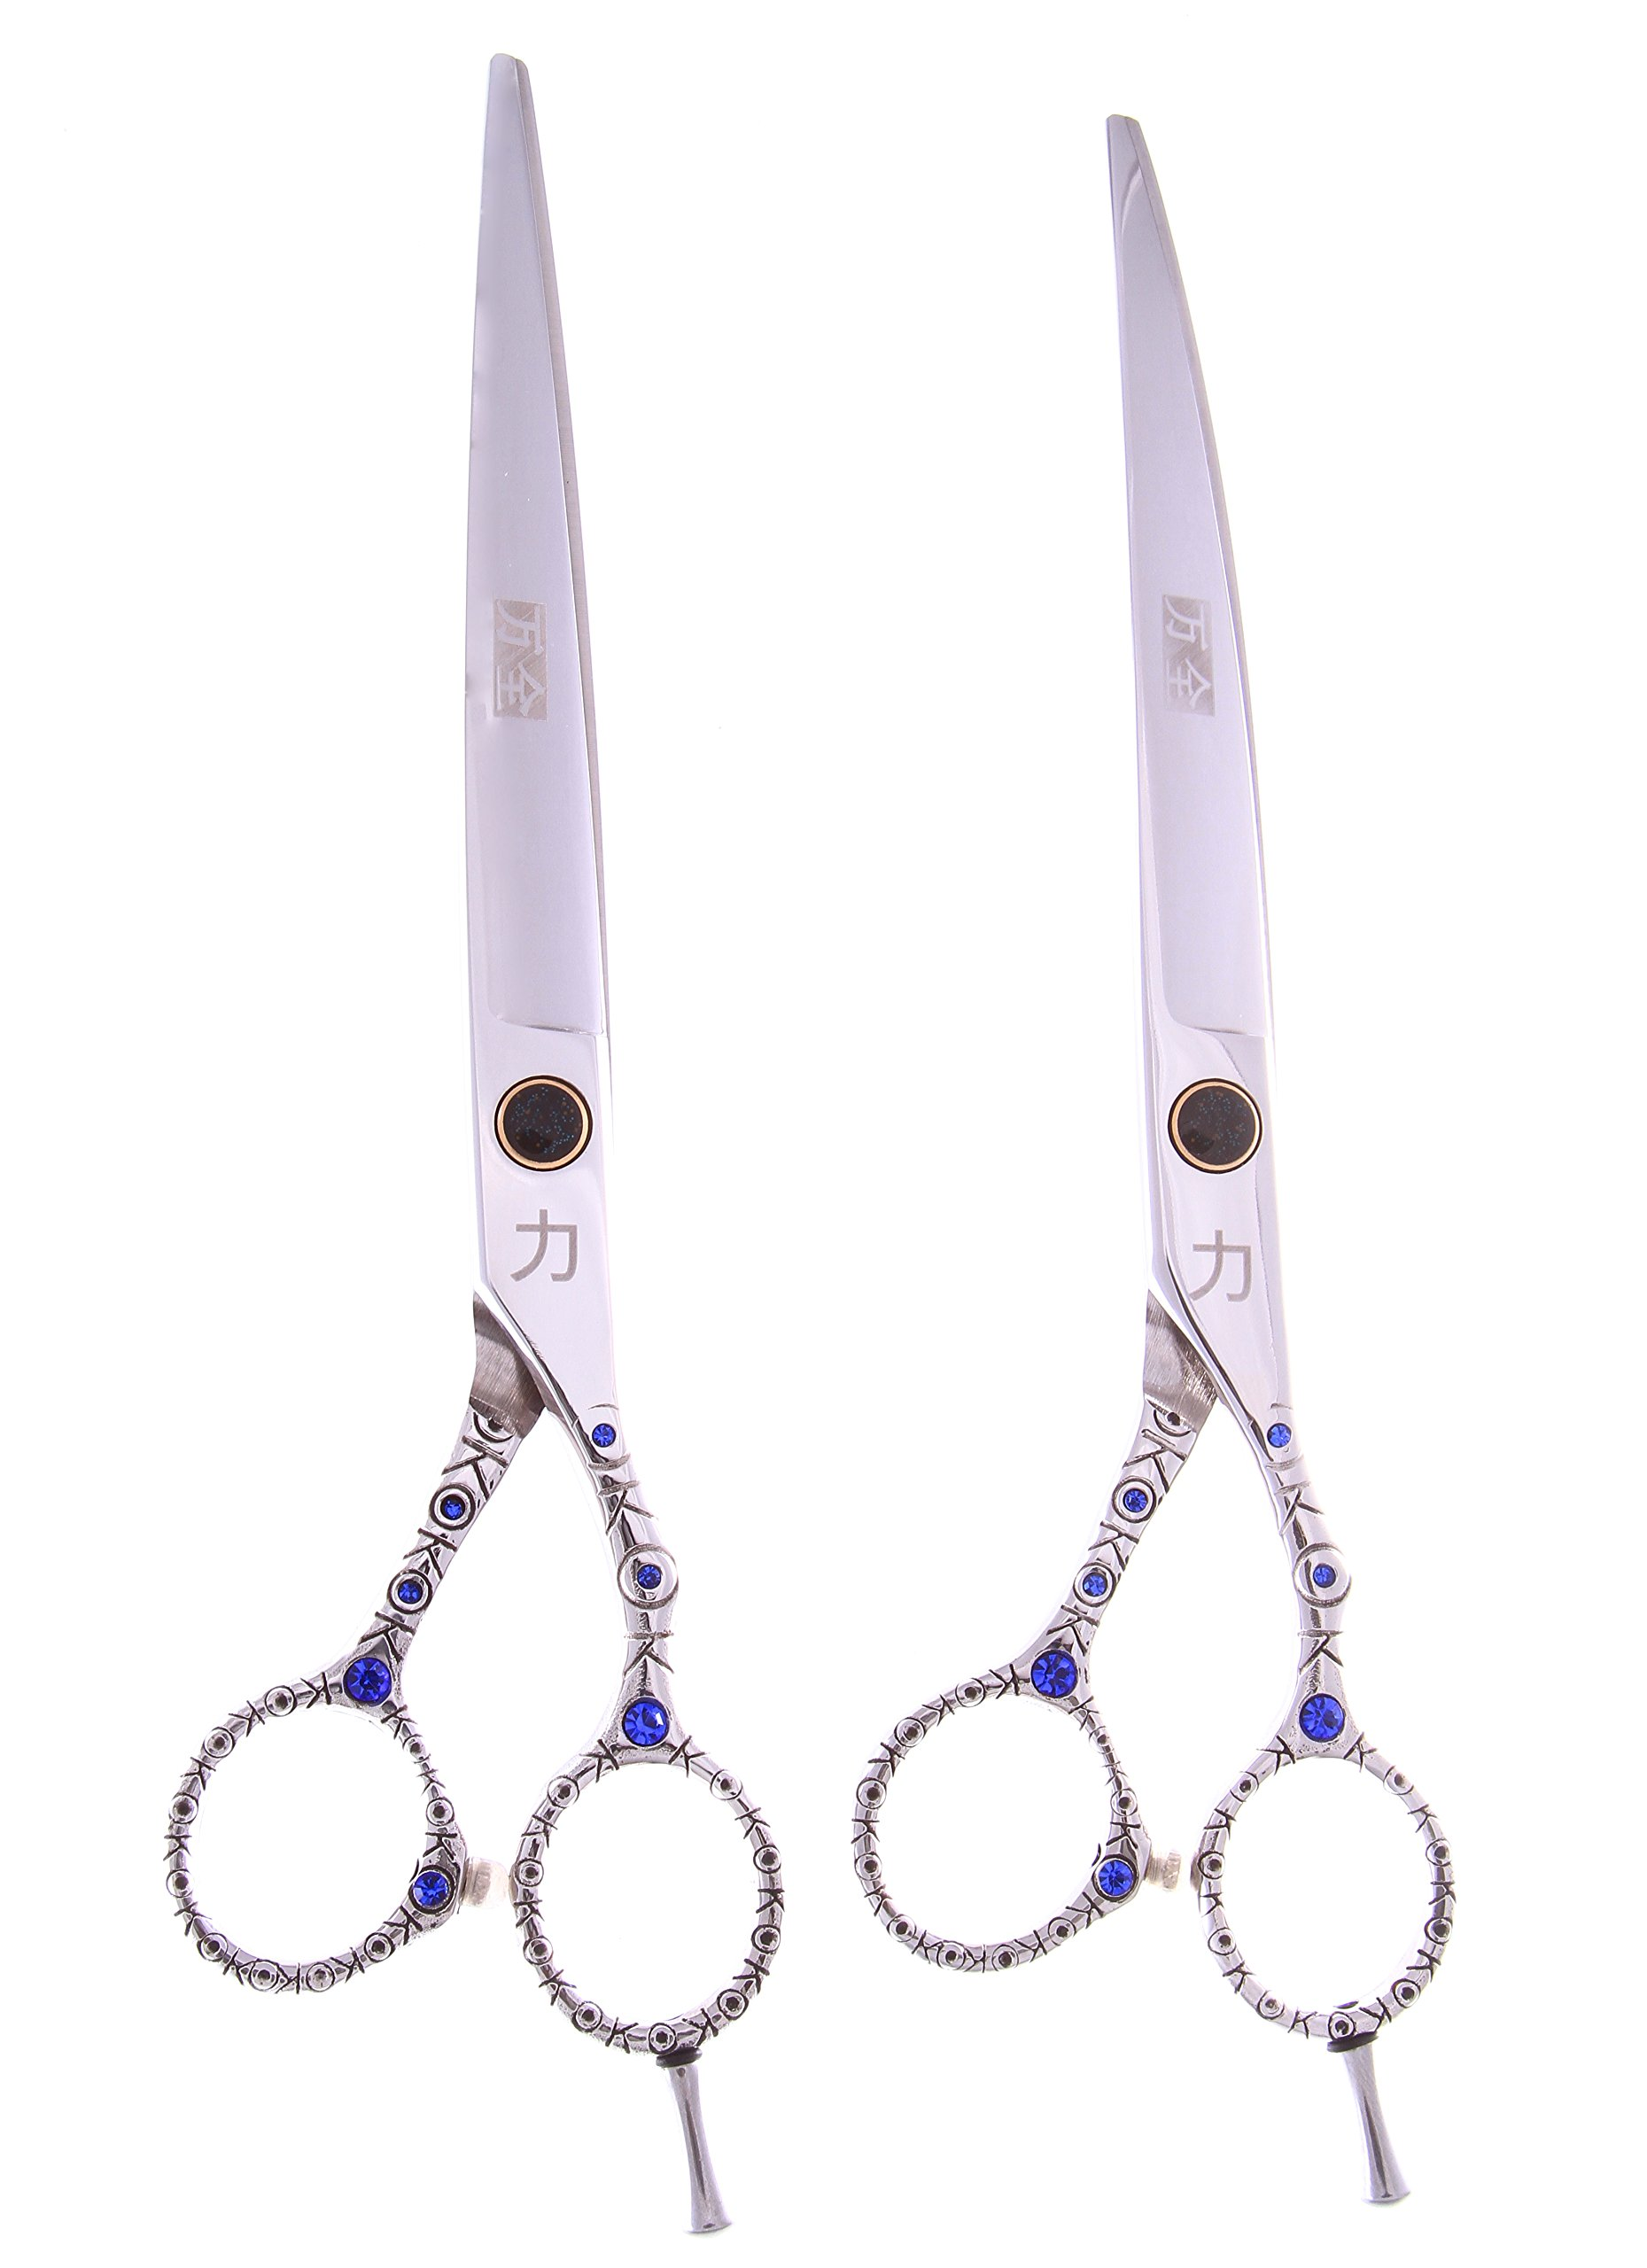 ShearsDirect Japanese 440C Stainless 2-Piece Straight and Curved Shear Set with Off Set Handle Design, 8-Inch